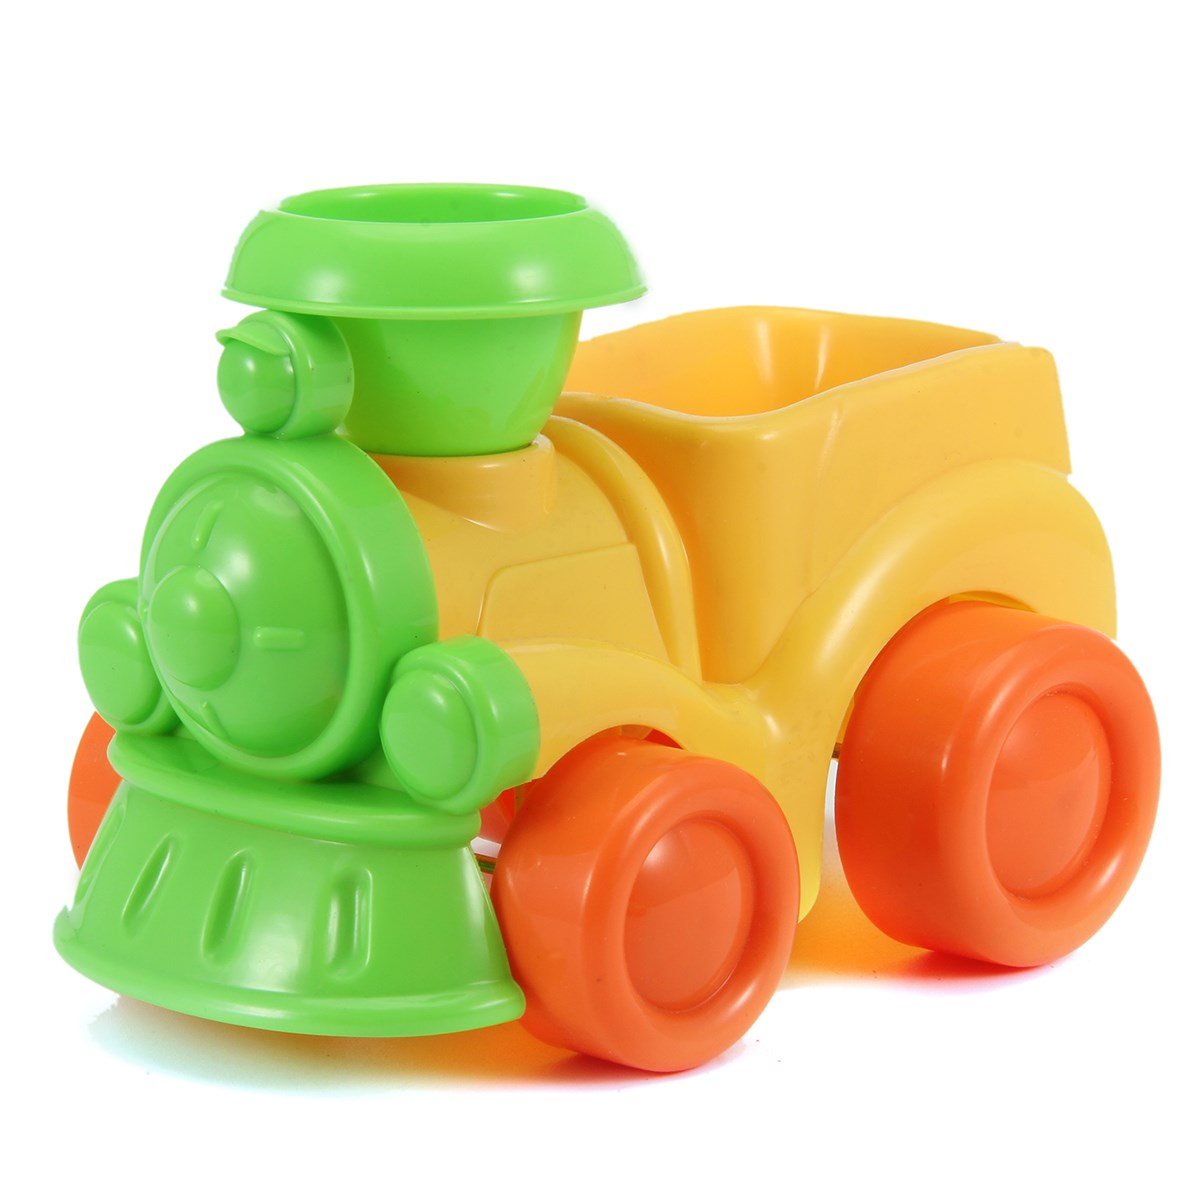 Beach Tools 3pcs/Set Sand Playing Toys Kids Funny Sand Toy Water Beach Outdoor Toy With Locomotive Shape Tools Seaside Toy